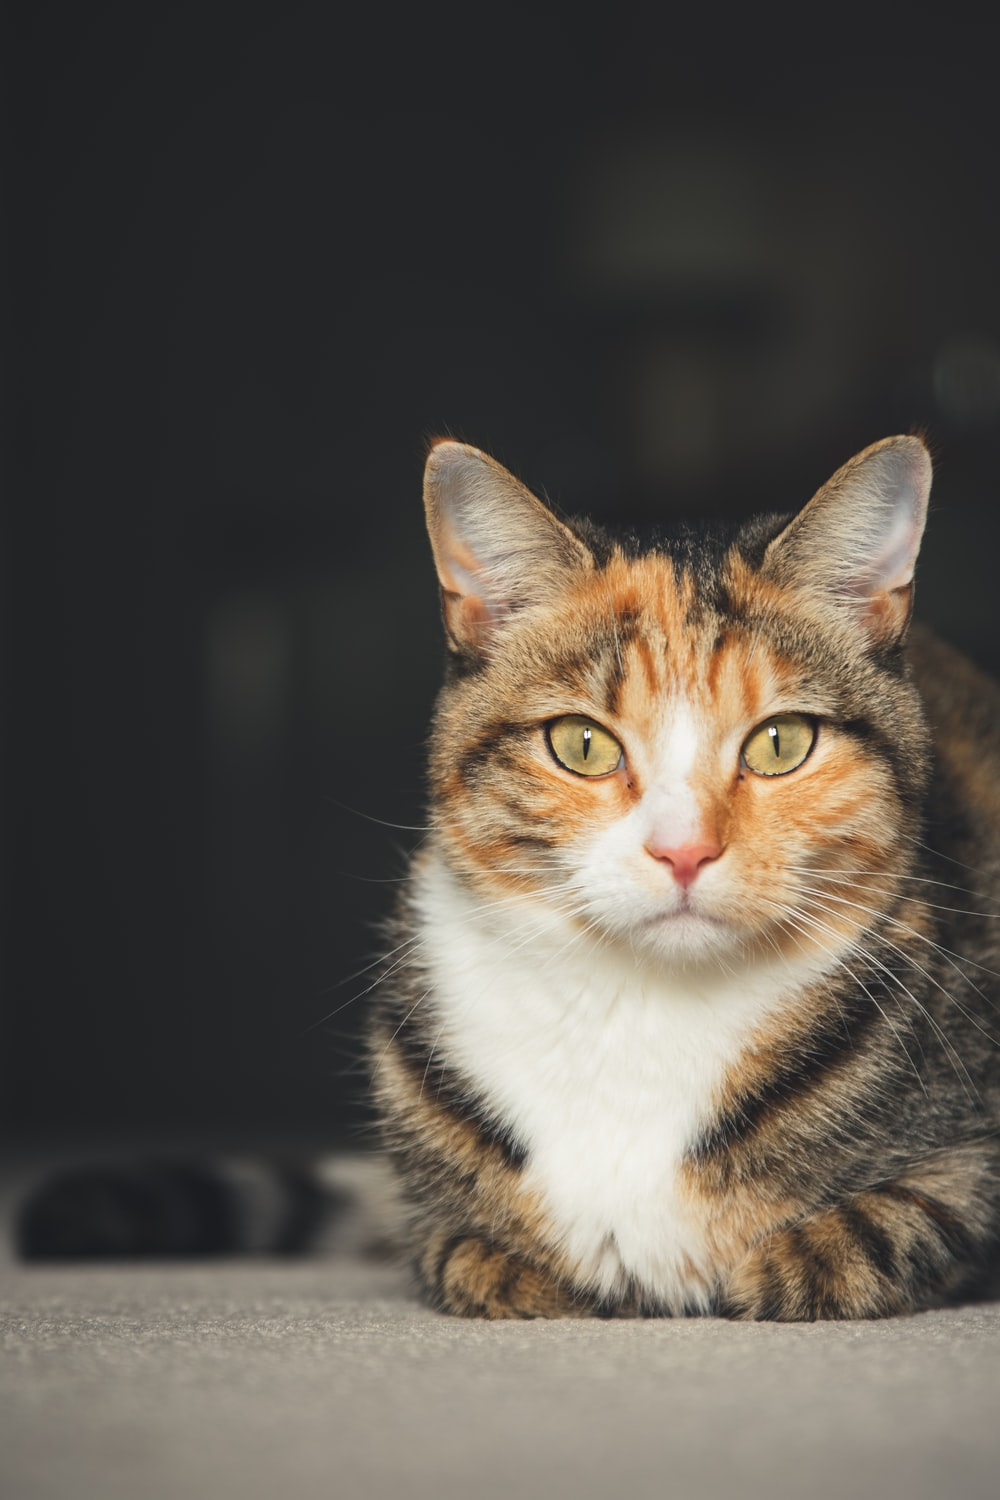 sitting white and brown tabby cat